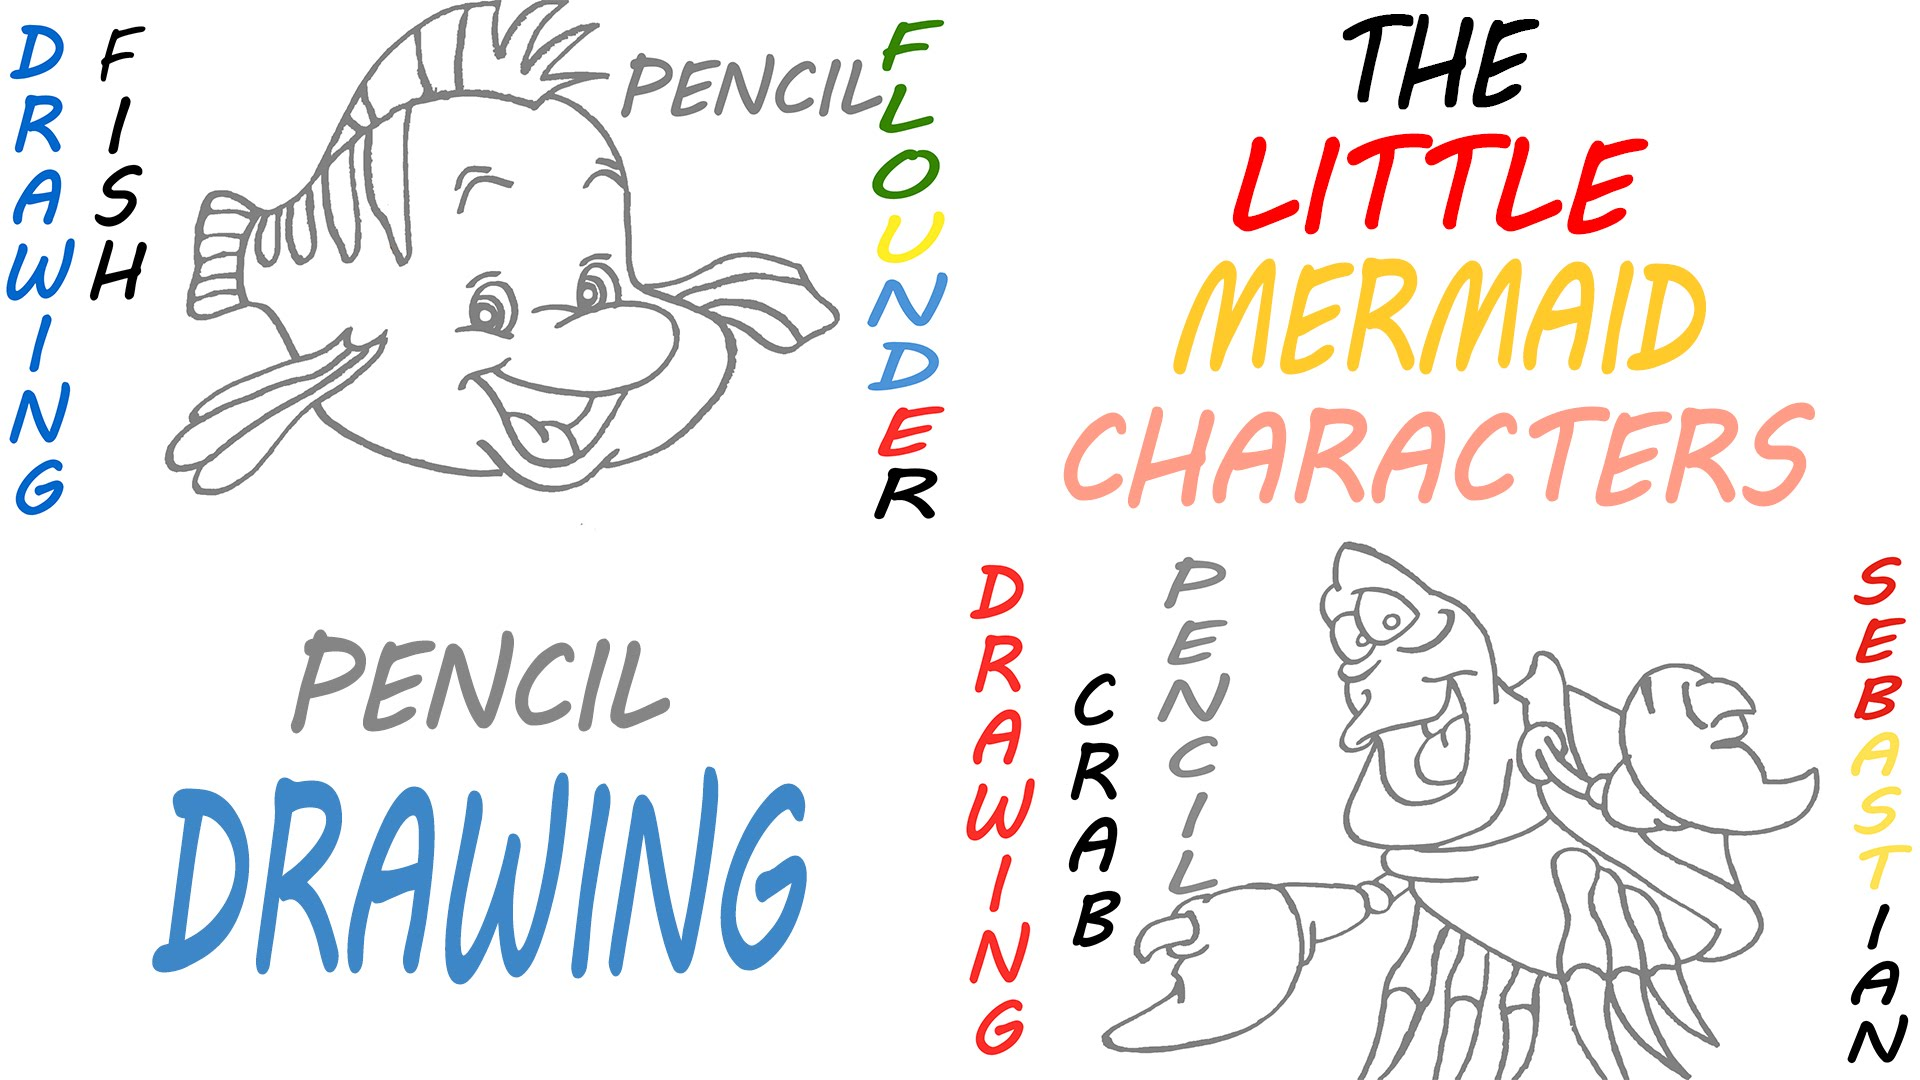 1920x1080 How To Draw The Little Mermaid Characters Step By Step Easy